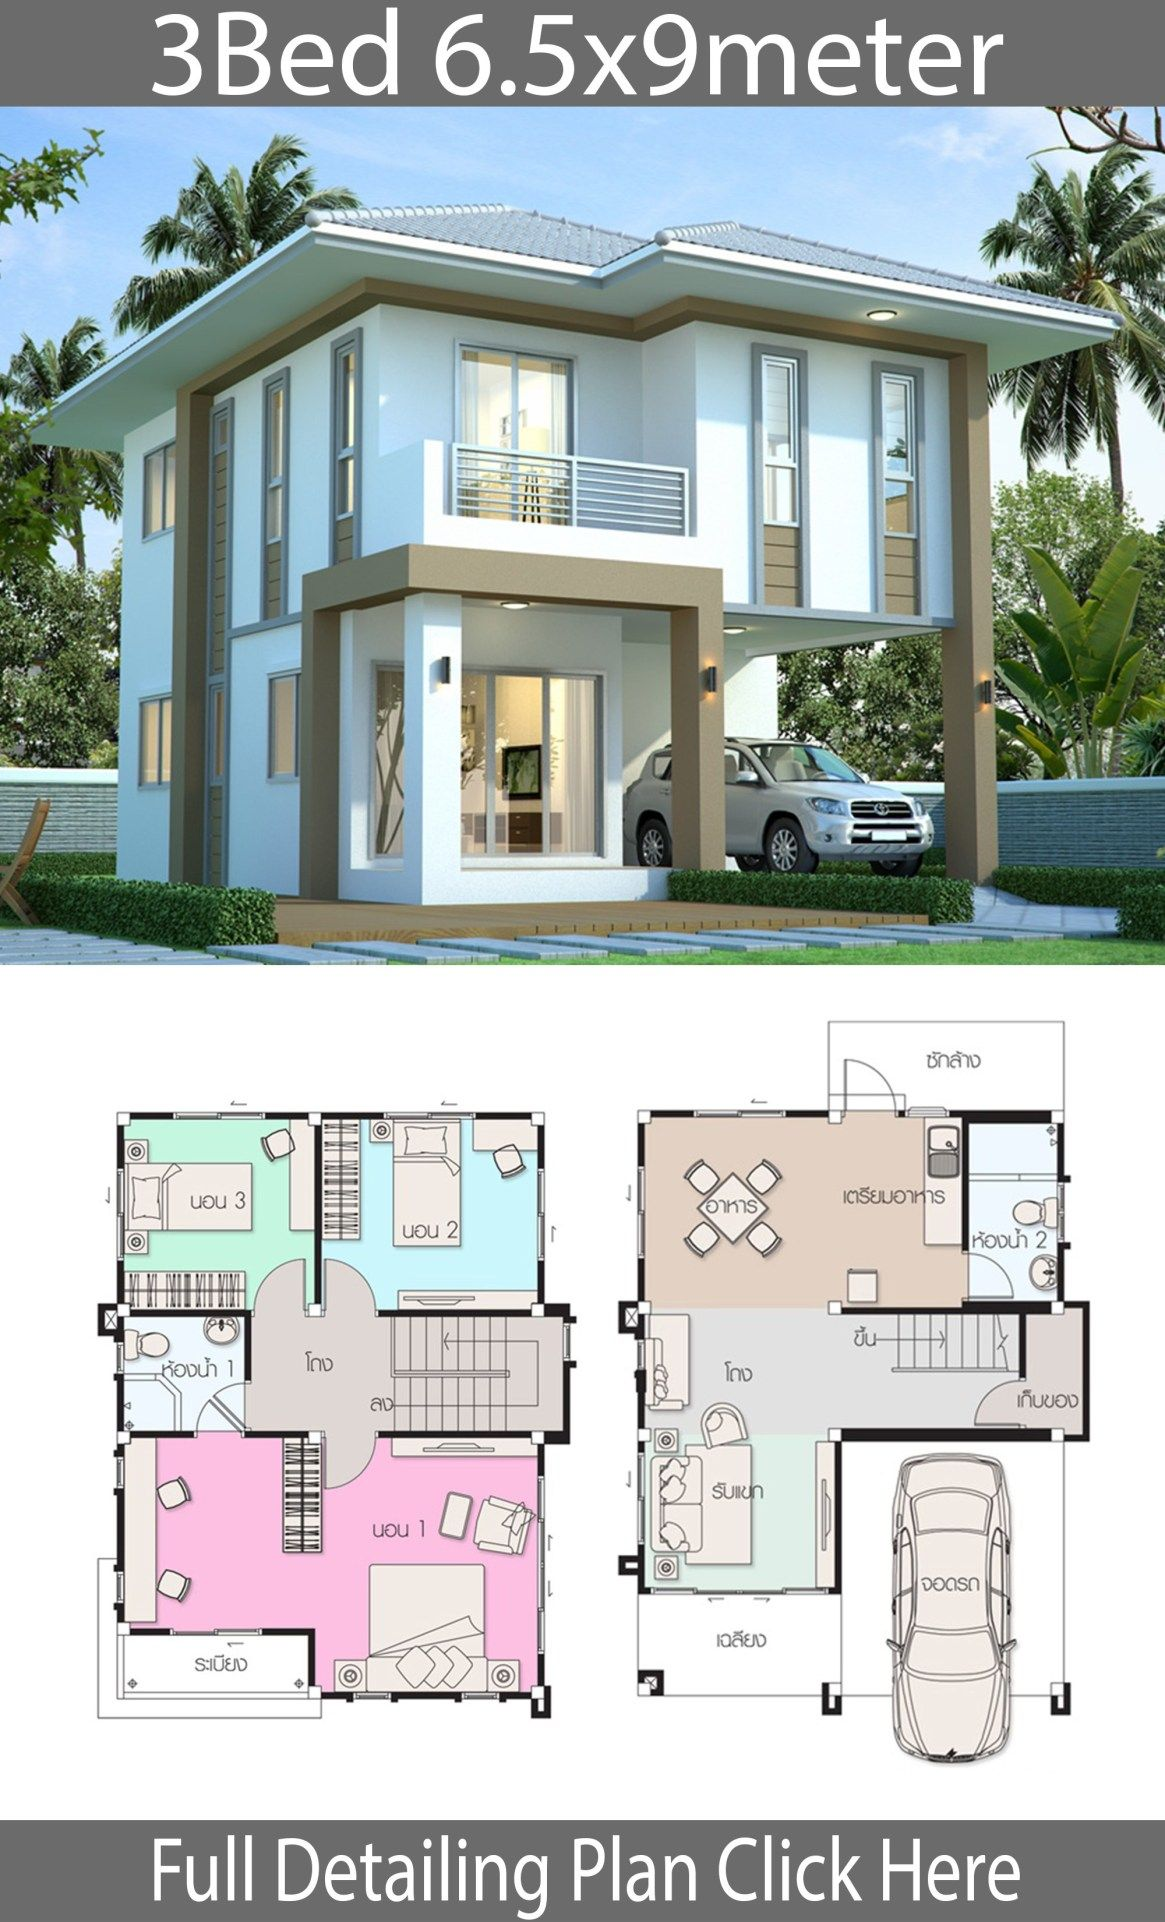 House Design Plan 6 5x9m With 3 Bedrooms Home Design With Plansearch House Construction Plan House Designs Exterior Model House Plan